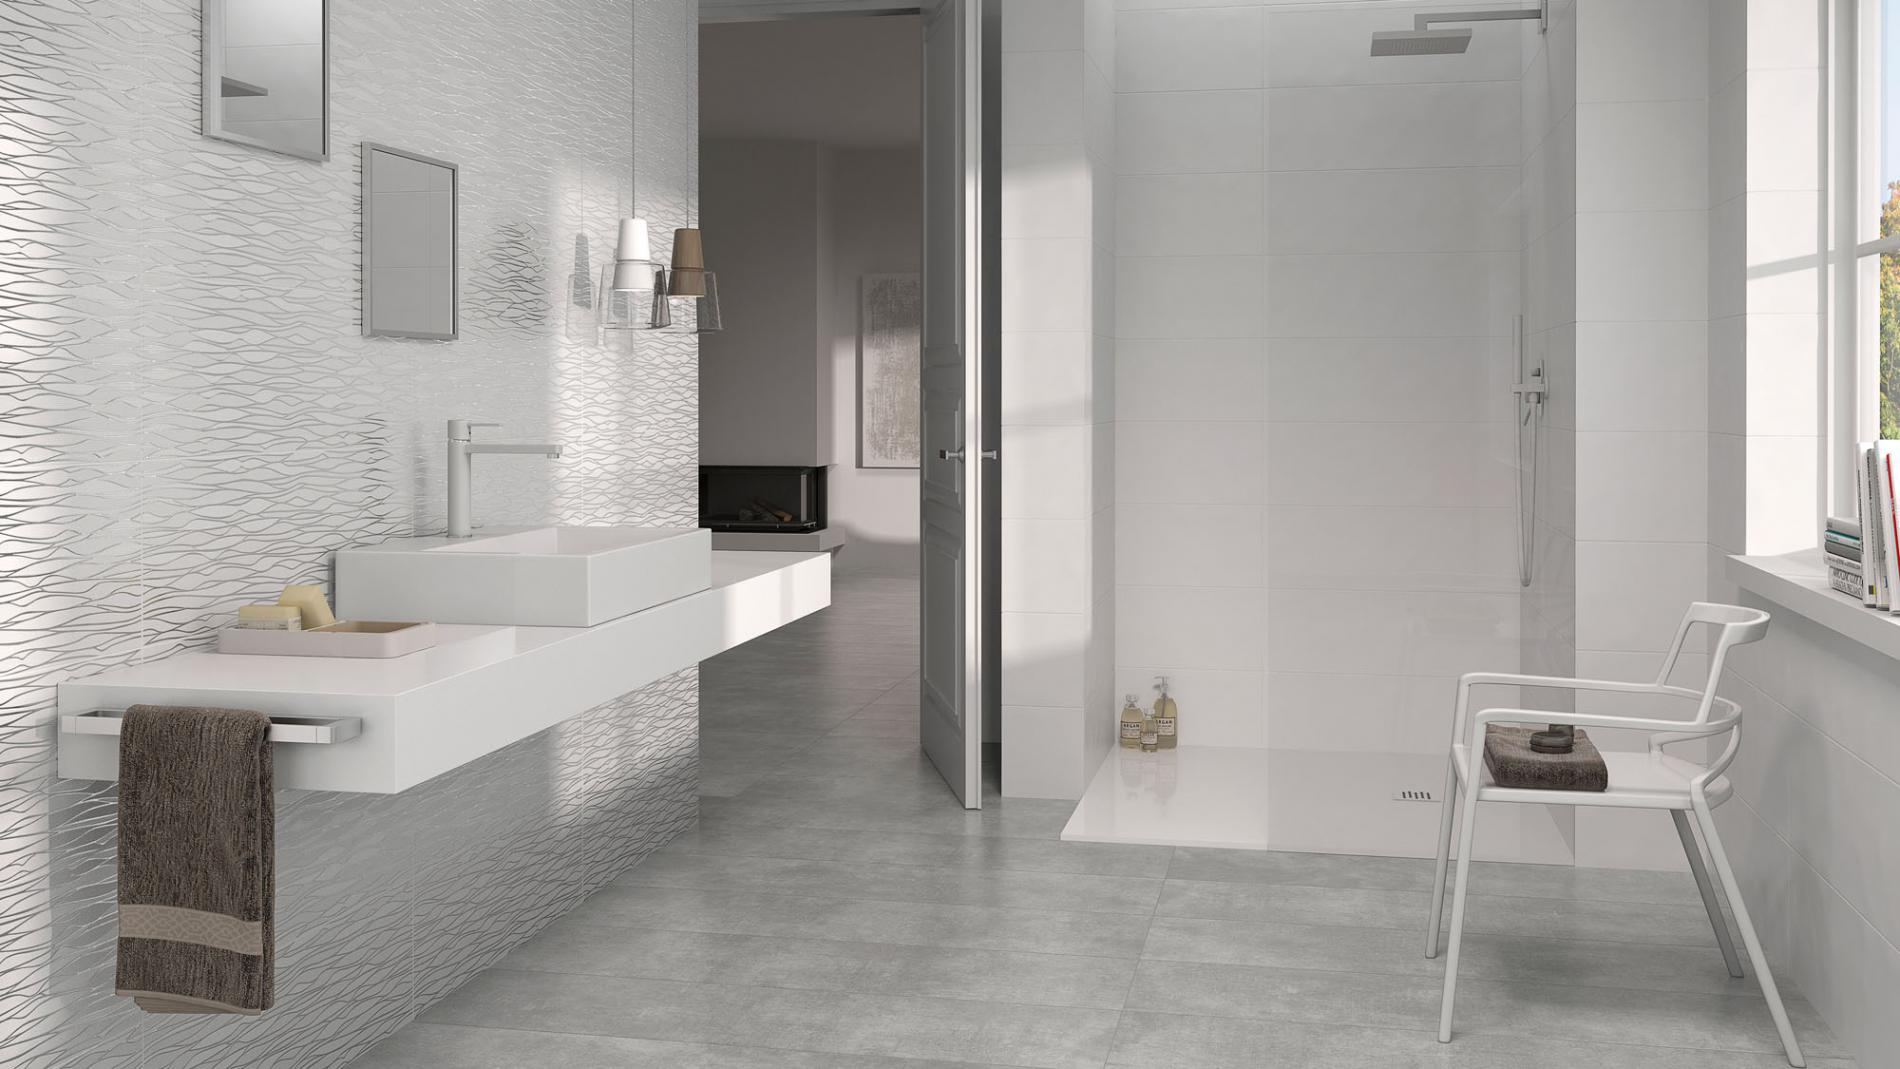 pam1900x311 Tiles dublin waterloo bathrooms commercial contracts ireland supply and fit luxury.jpg